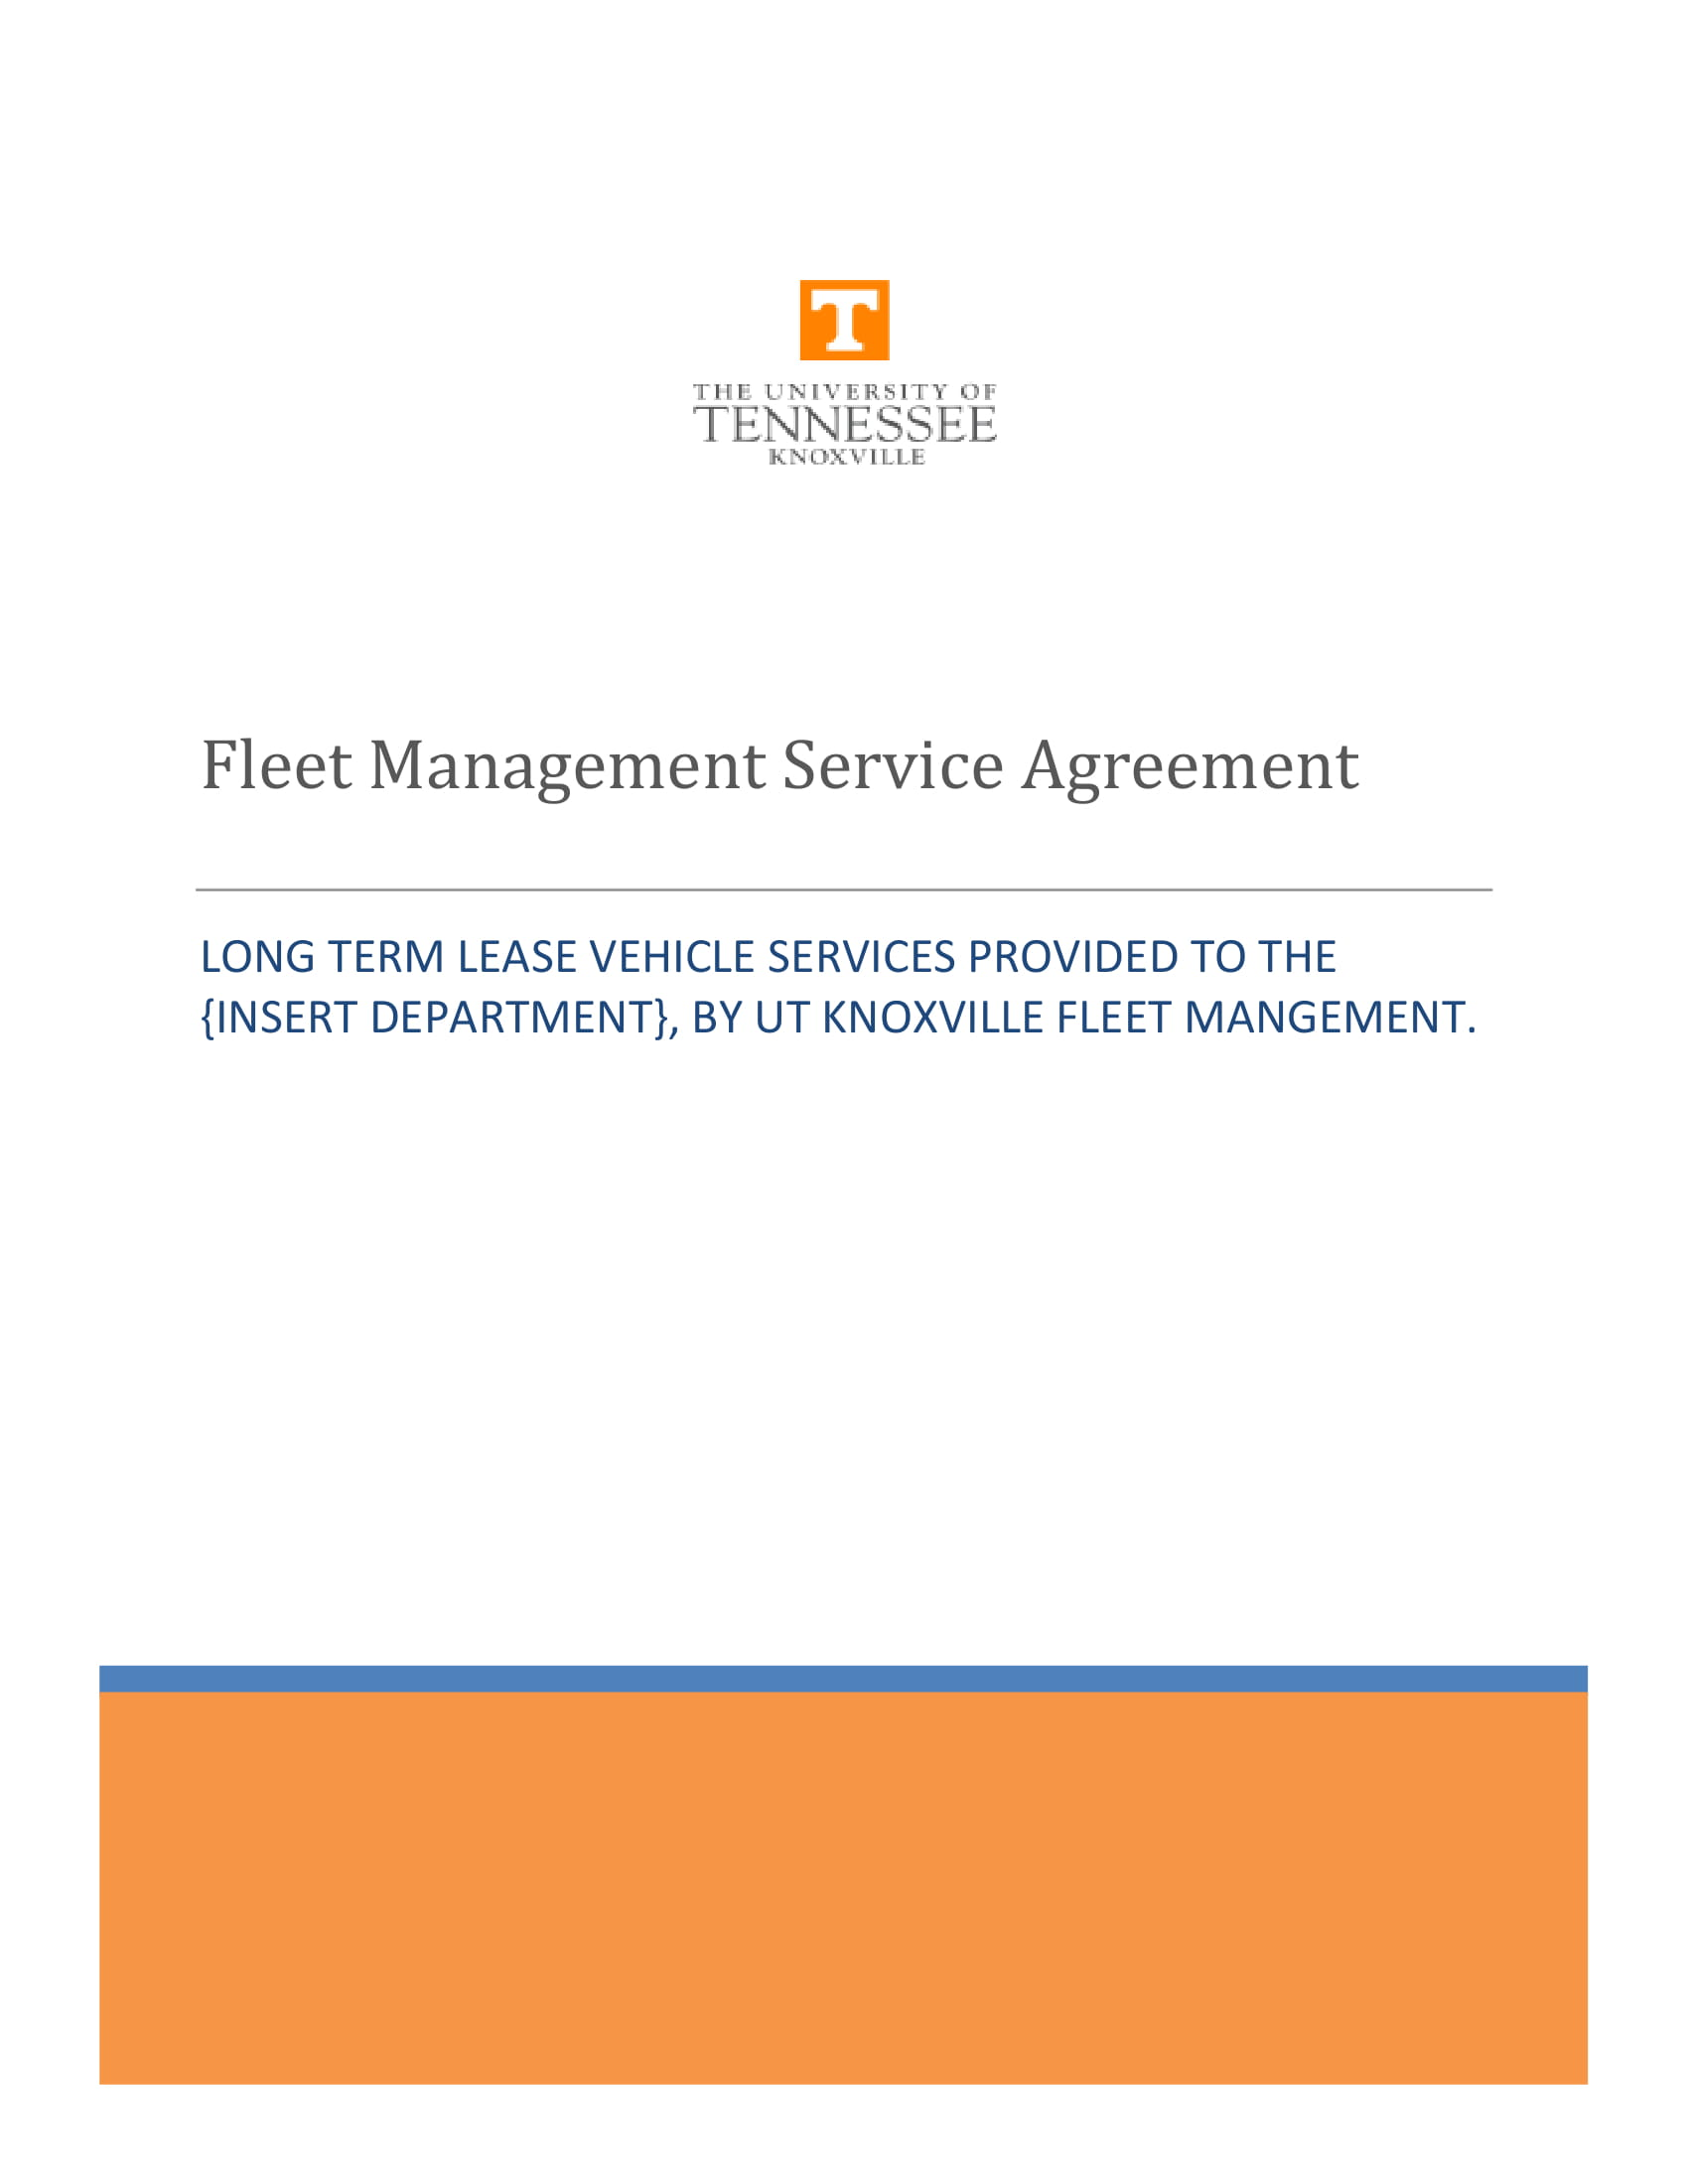 fleet management service agreement example